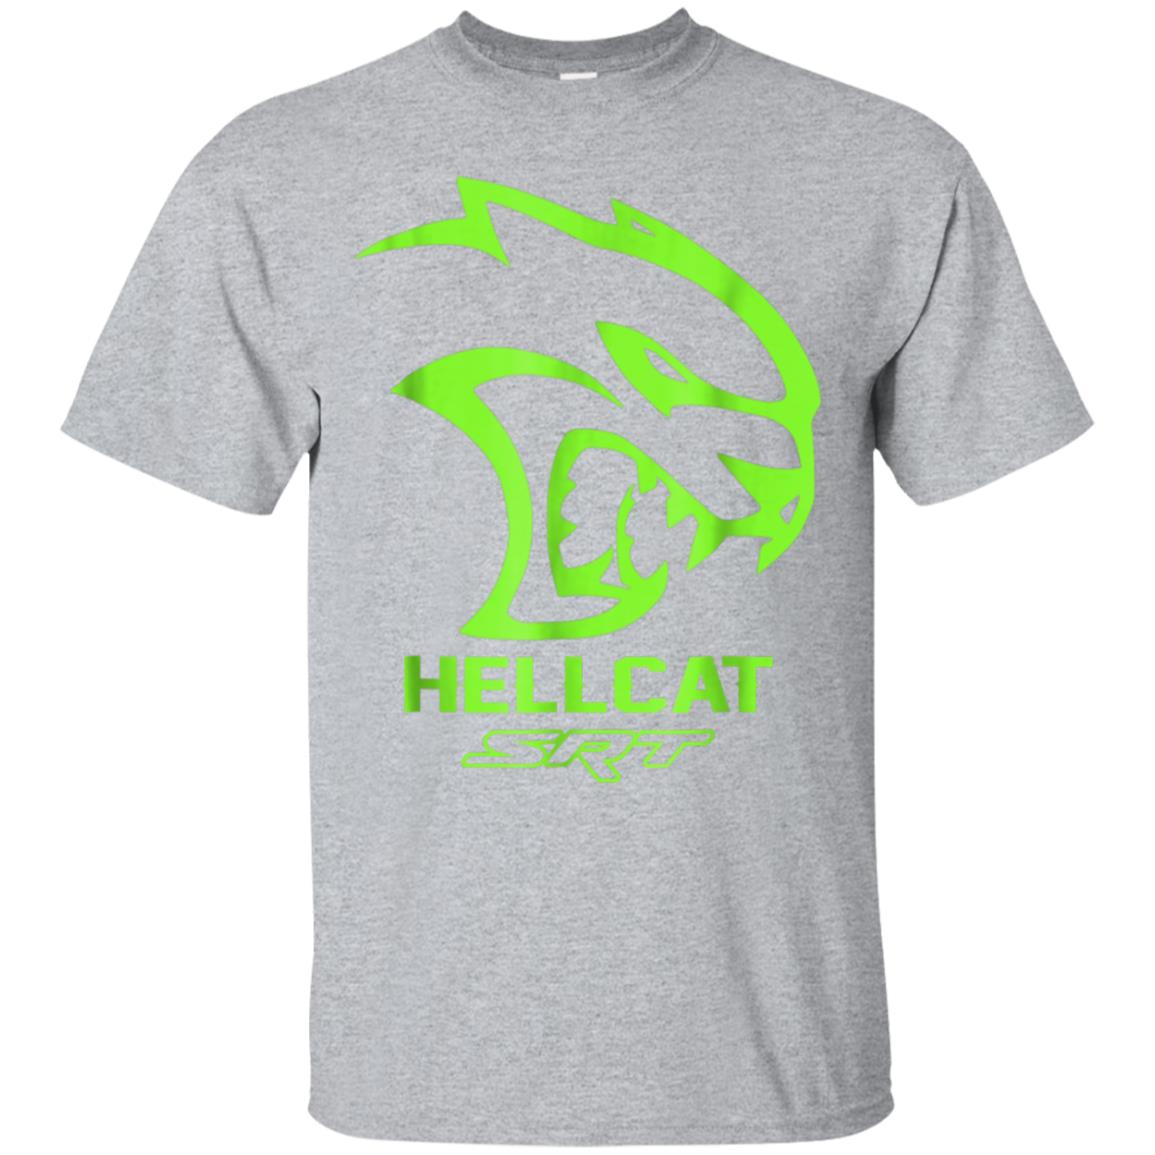 SRT HELL CAT DODGE TSHIRT Green, Awesome HELL CAT Tee 99promocode